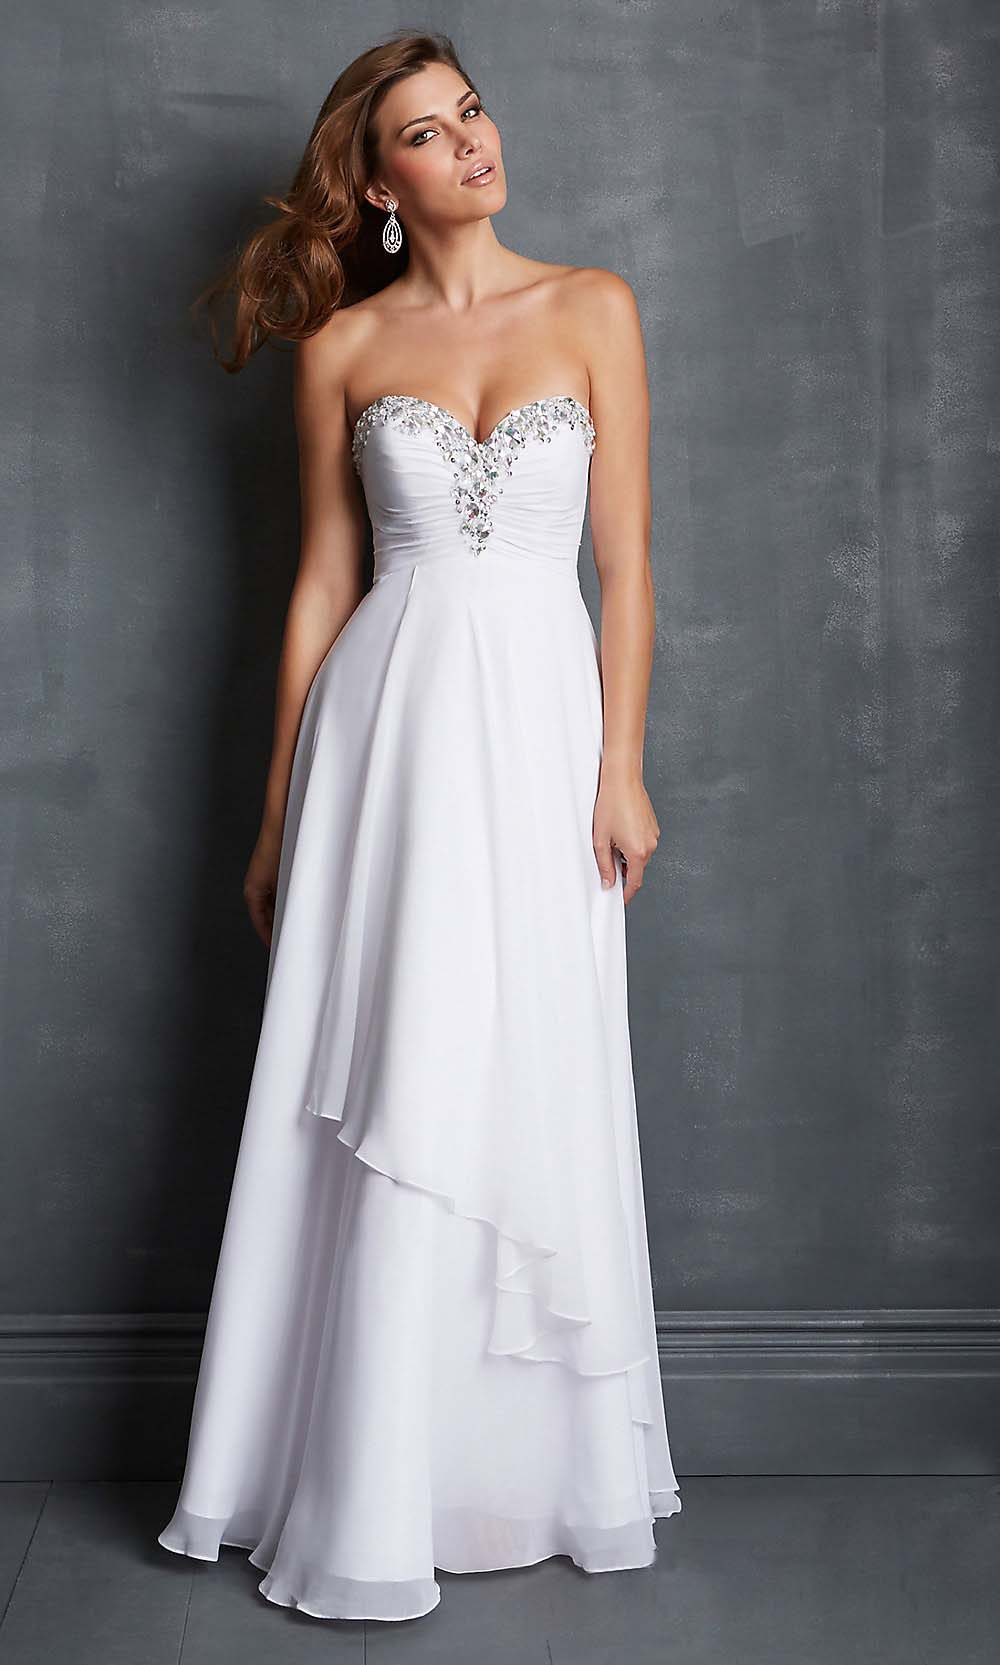 White Long Prom Dresses - Prom Dresses With Pockets